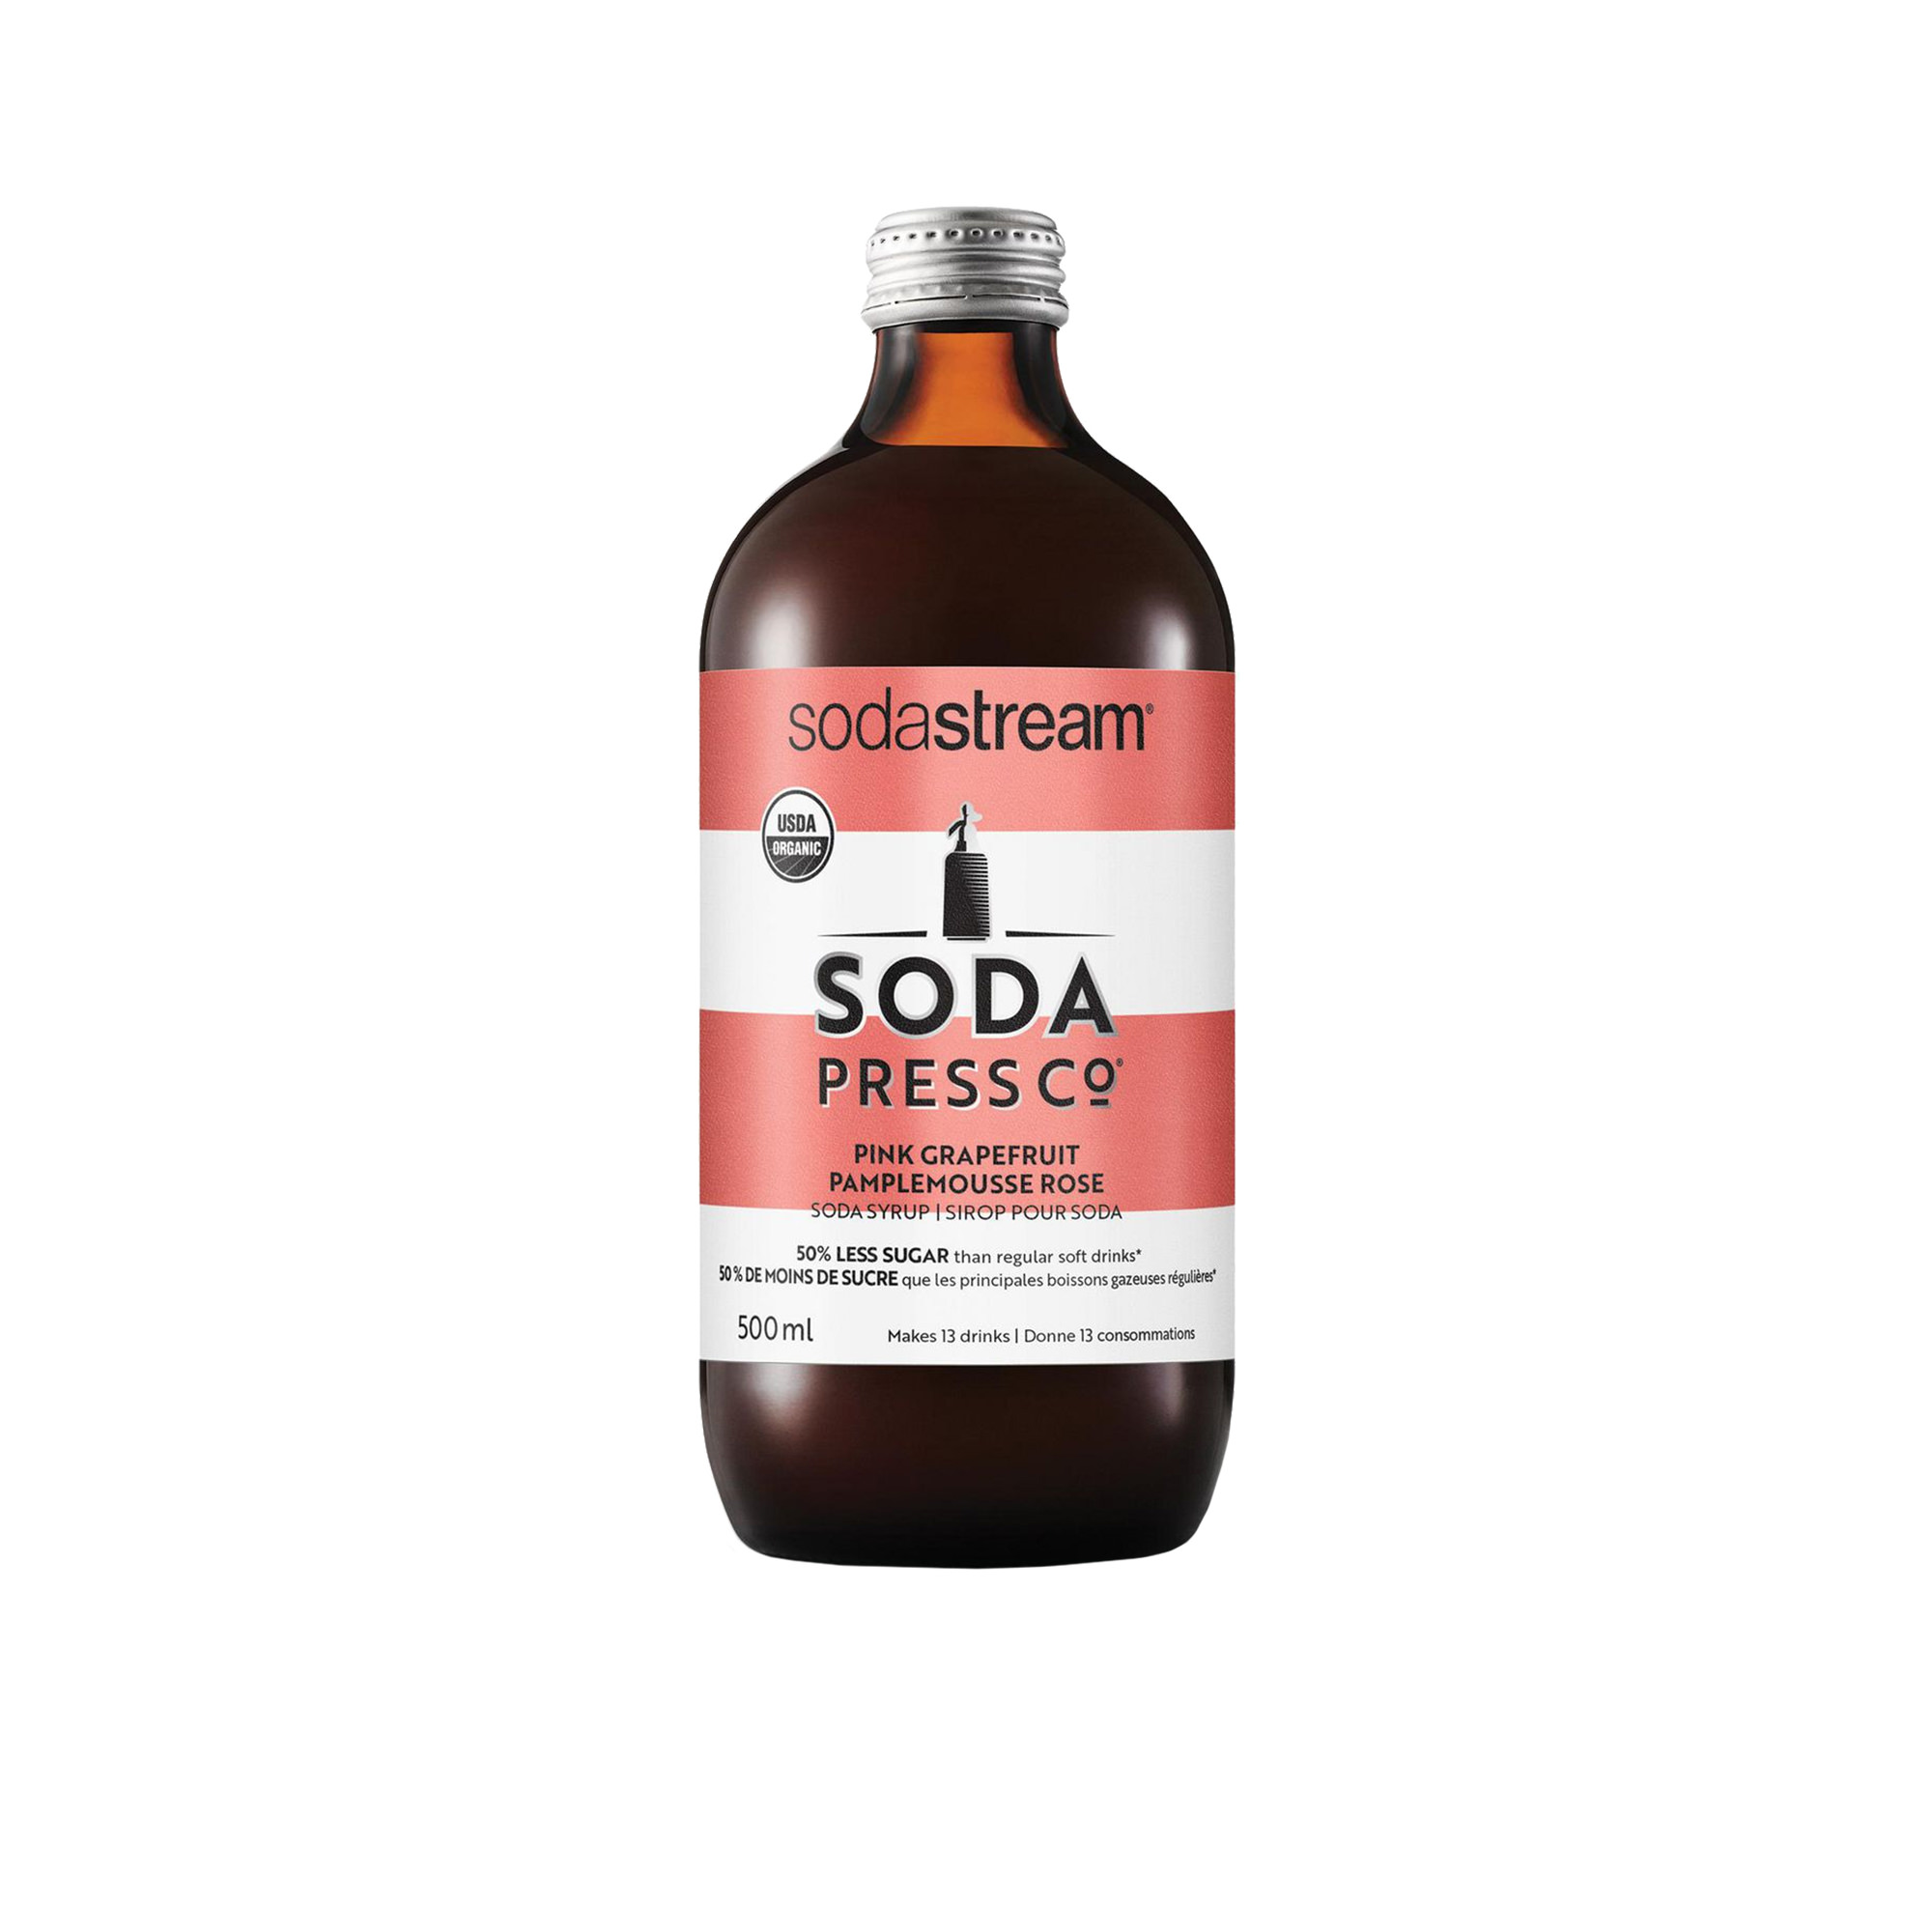 SodaStream Soda Press Co Organic Soda Syrup Grapefruit